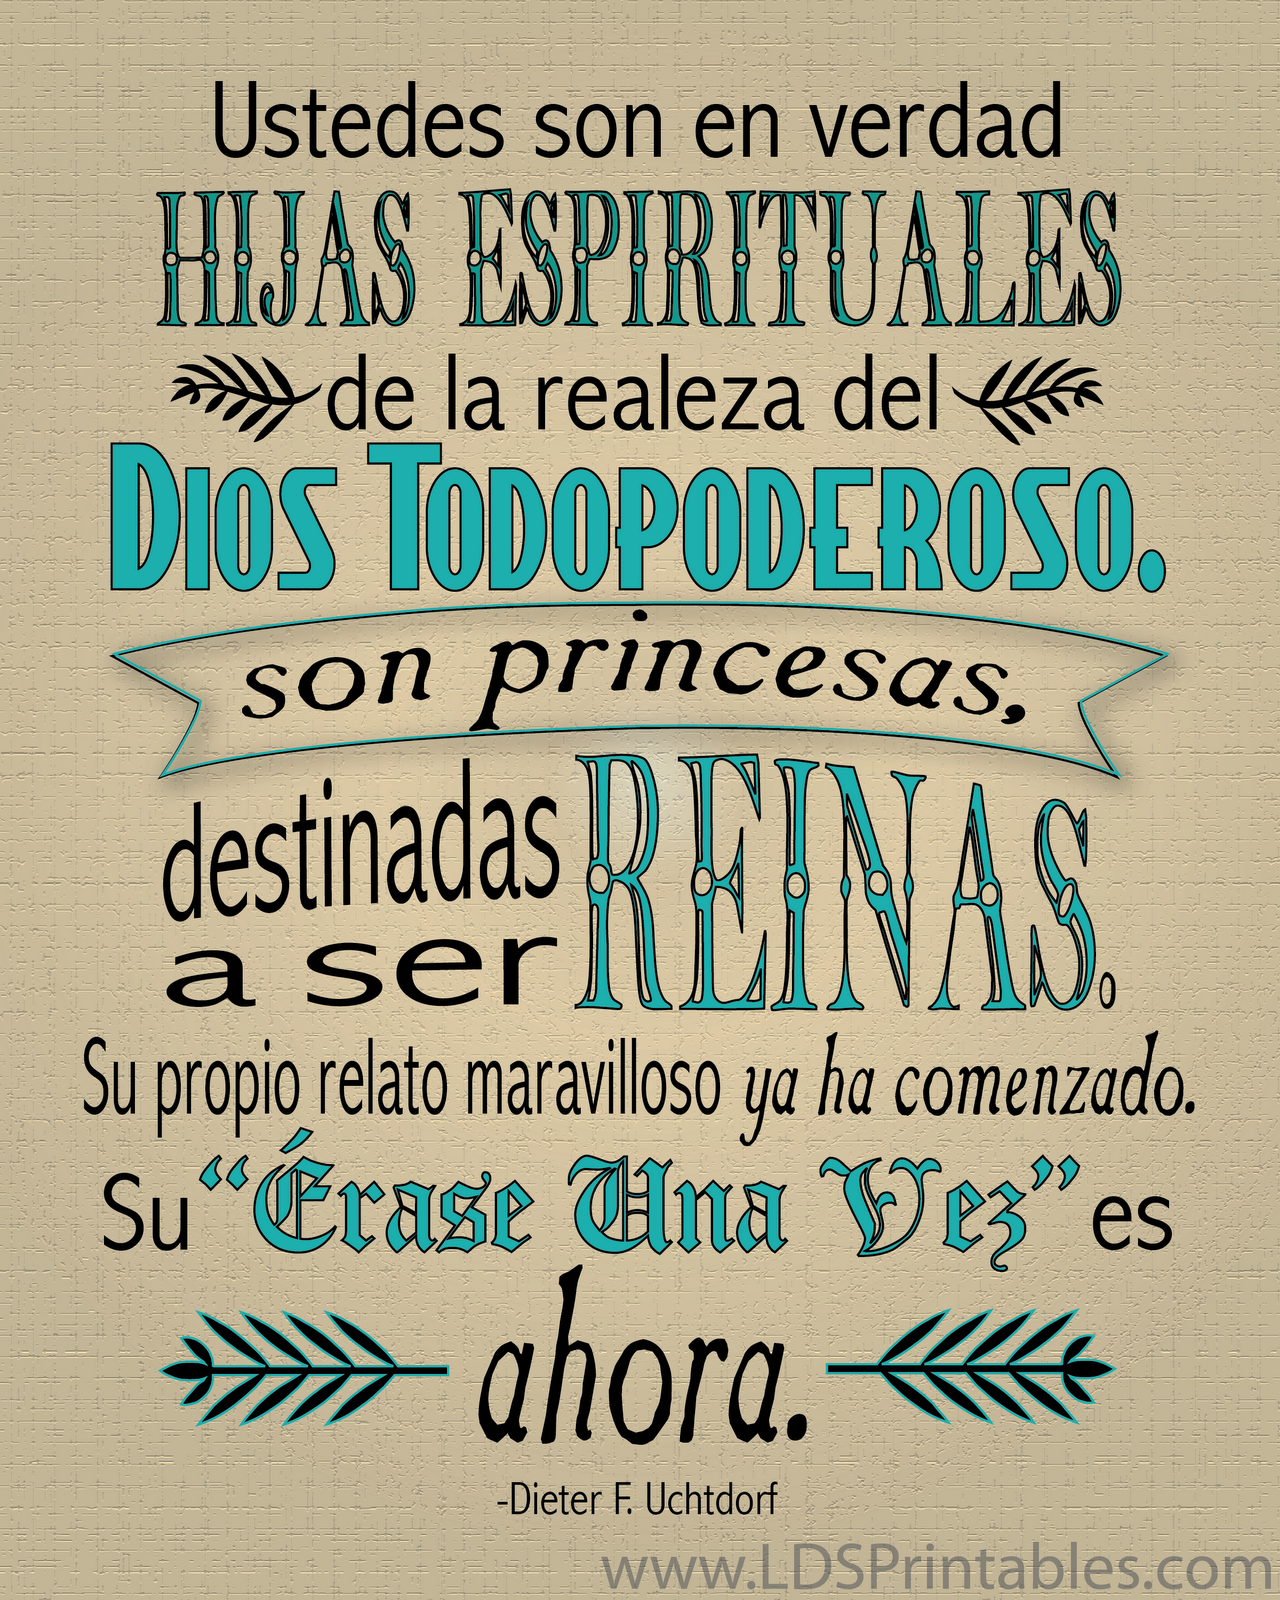 Famous Family Quotes In Spanish Quotesgram. God Quotes About Love And Strength Pictures. Faith Quotes Einstein. Sassy Goodbye Quotes. Christian Quotes Patience. You See Quotes. Hurt Lies Quotes. Christian Quotes Trials. Hurt Quotes Whatsapp